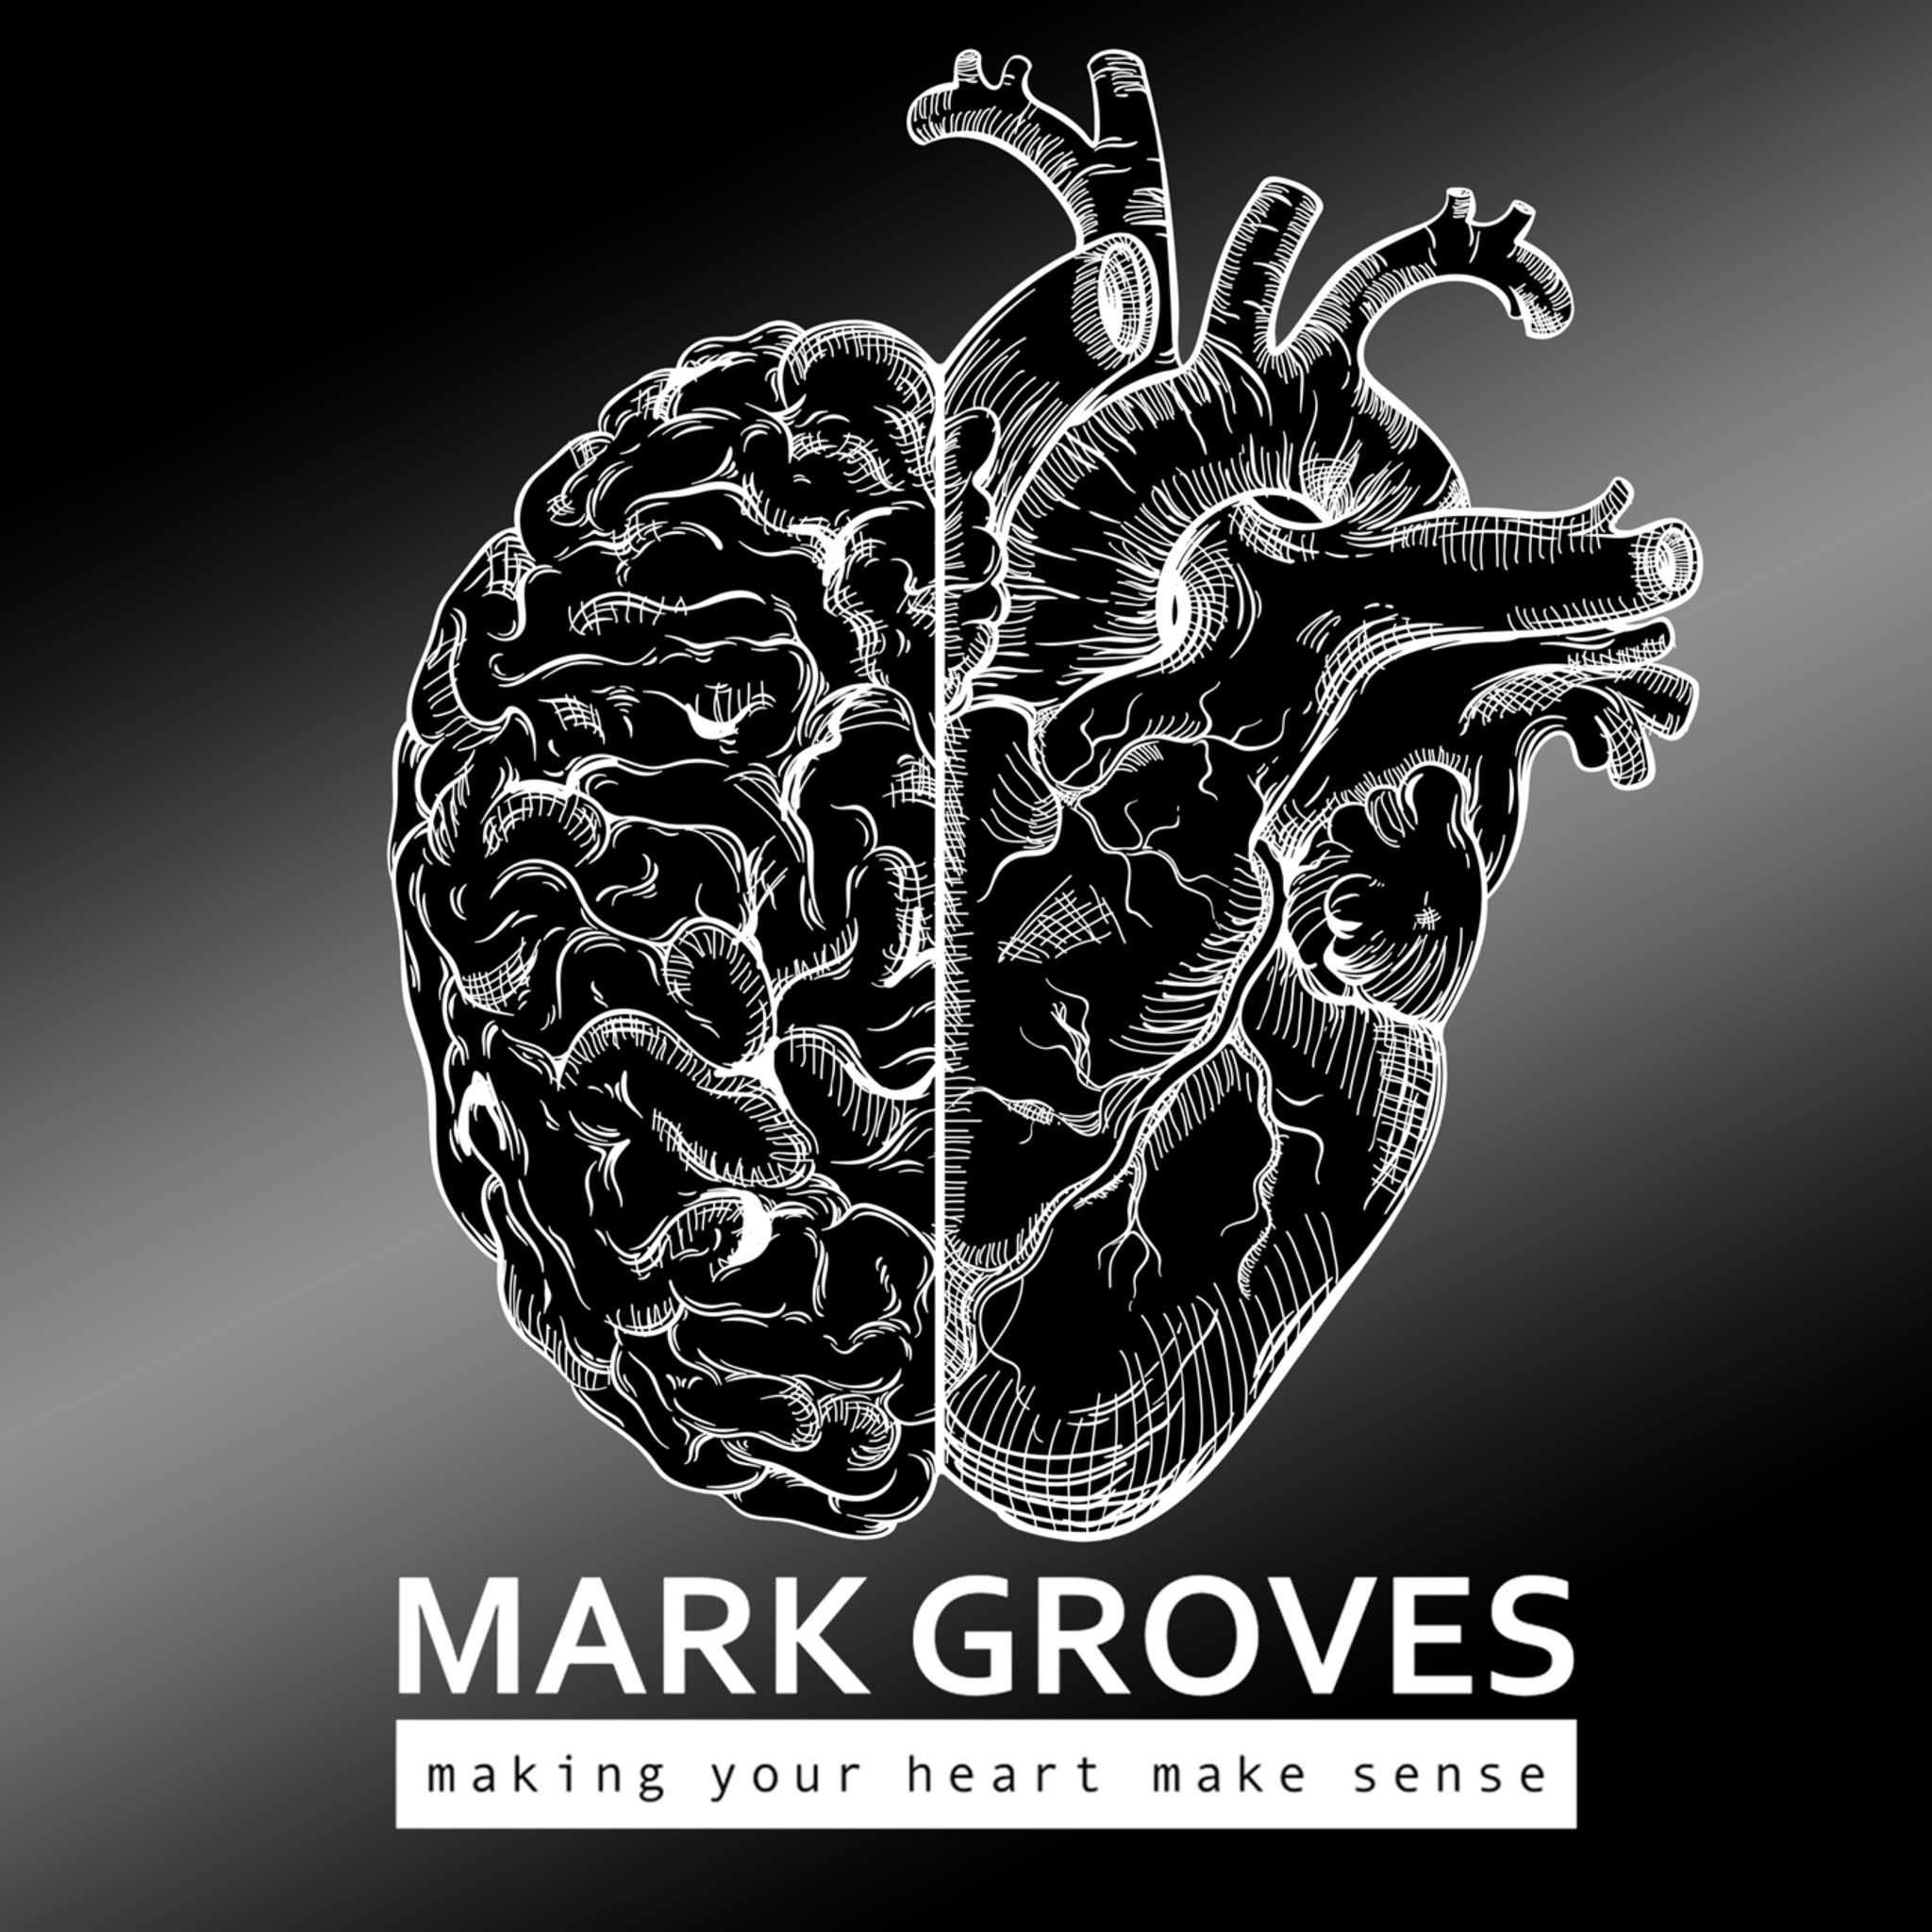 Podcast: Journey Home to Truth on Mark Groves Podcast